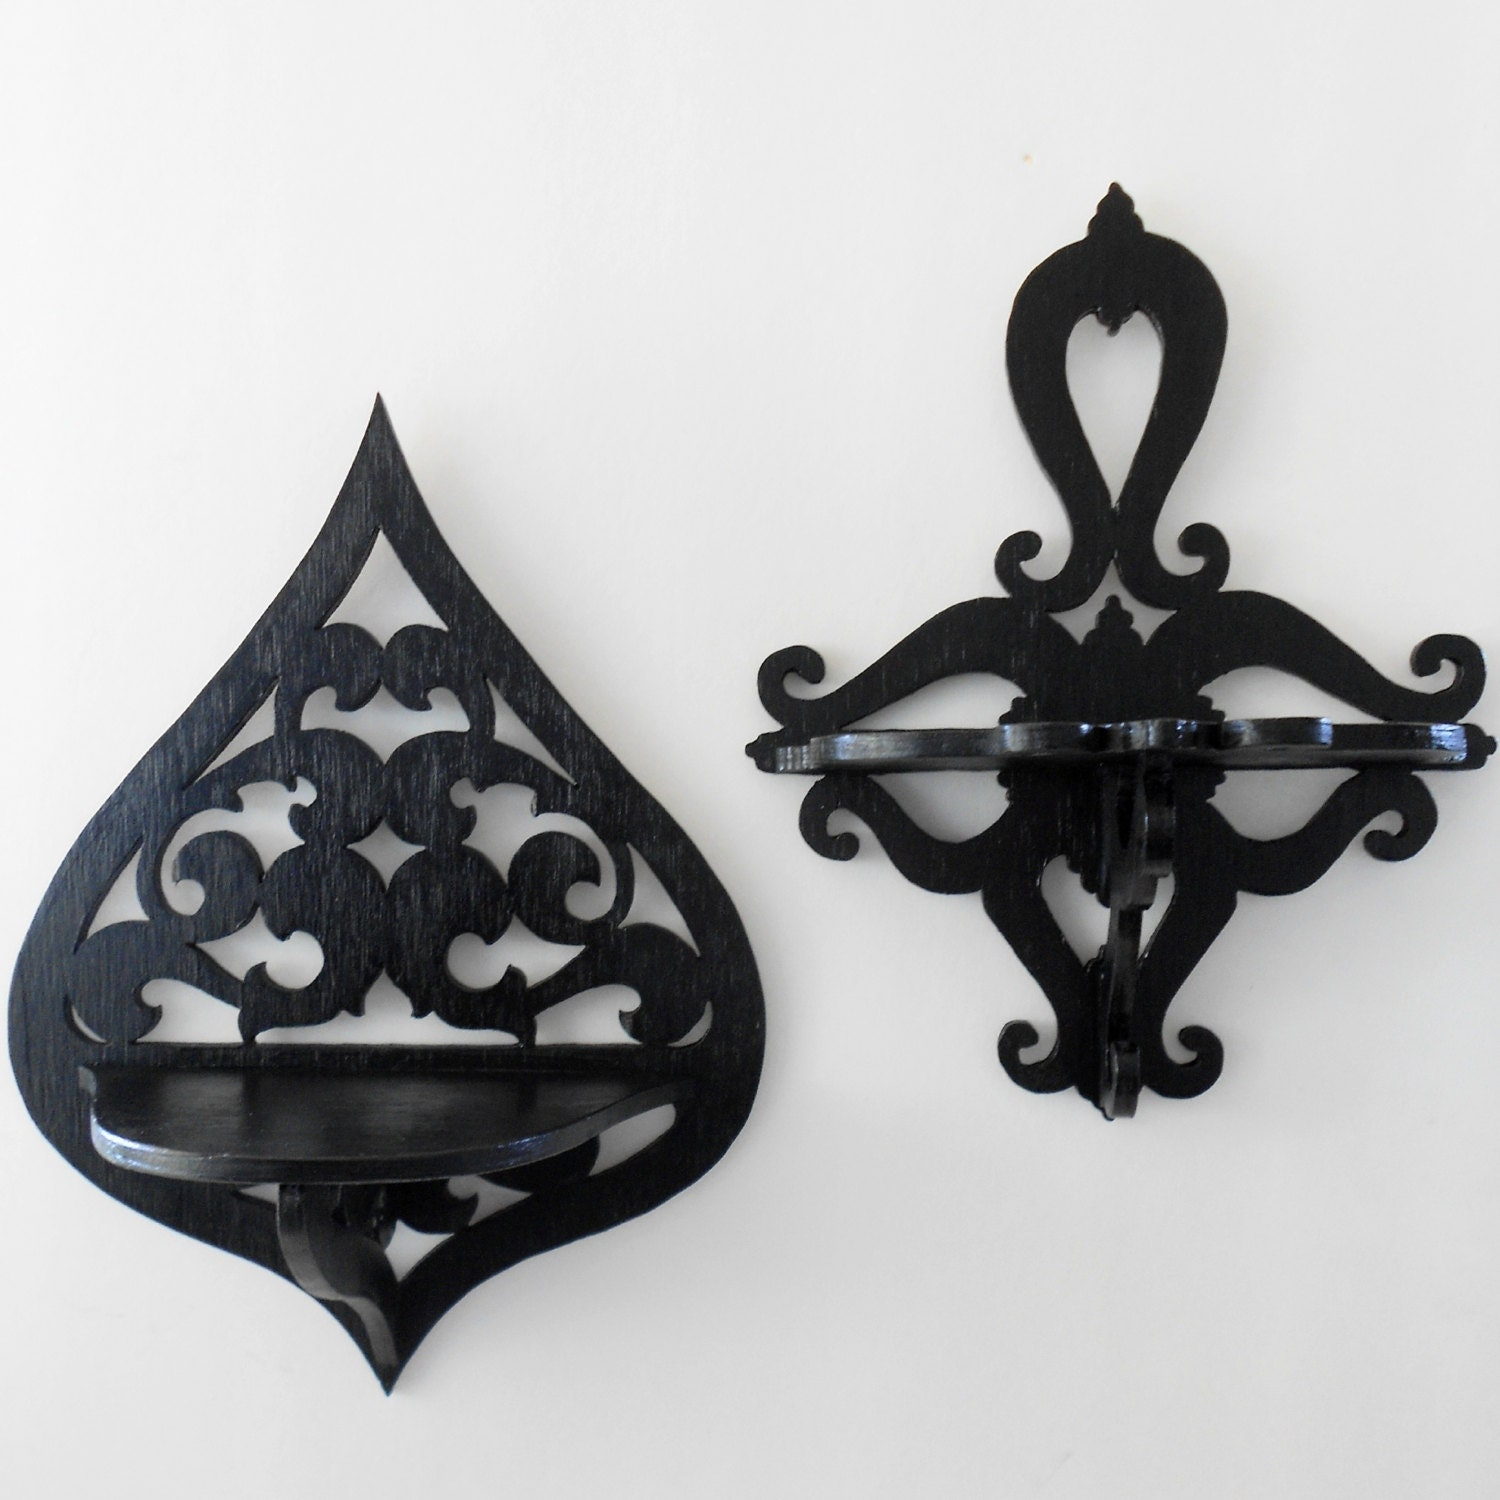 Wall Sconces Shelf : Gothic Home Decor Wall Shelf Sconce Decorative Shelf